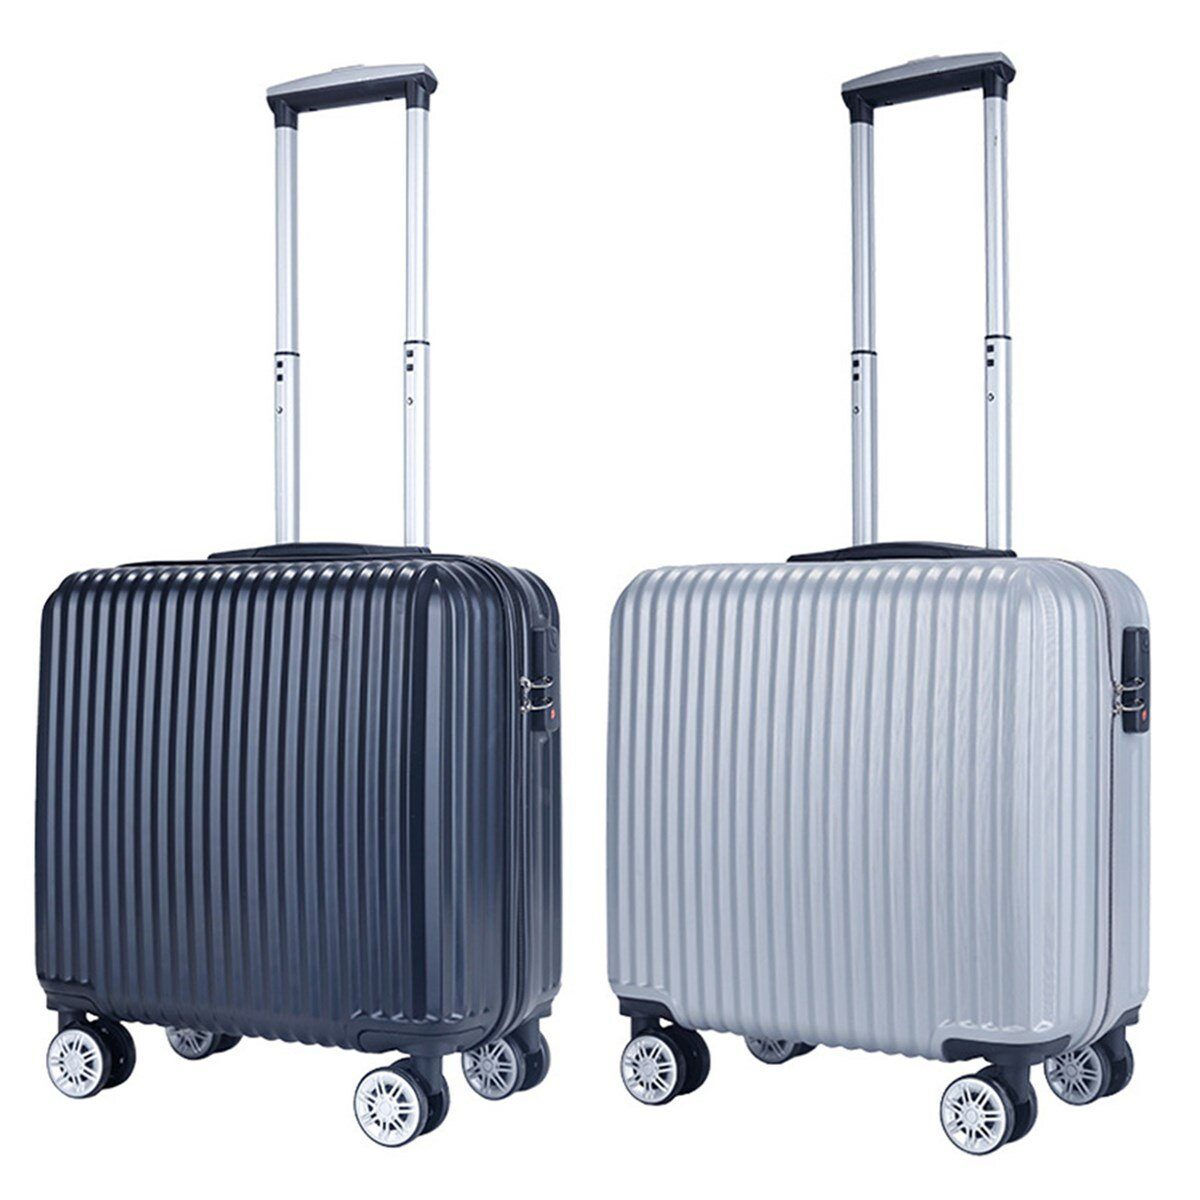 18inch Luggage Trolley Universal Mute Wheel Password Lock Travel Suitcase Fashion Aluminum Frame Trolley Box